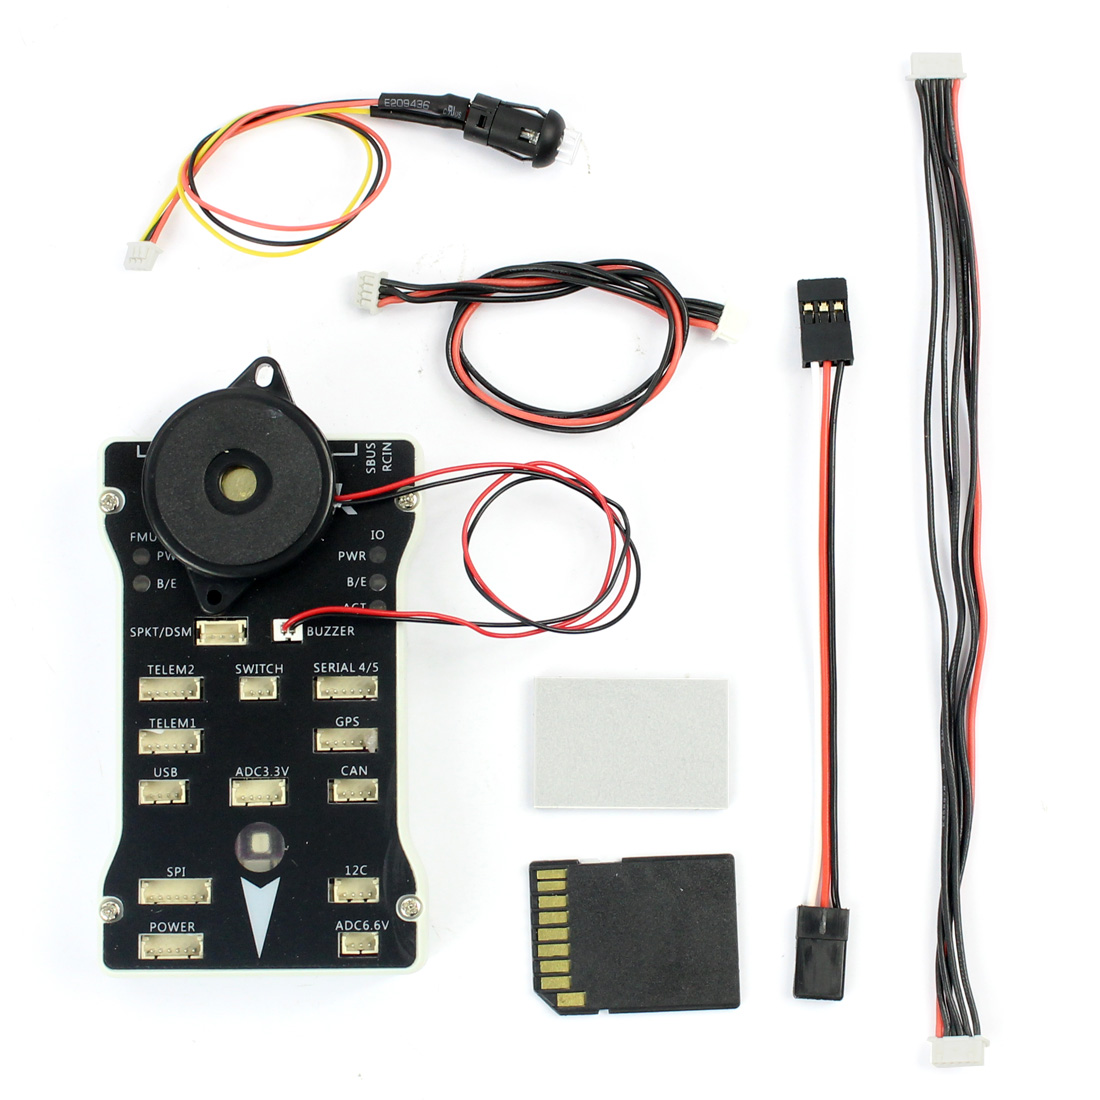 Unassembled RC Drone Kit With Color LED lamp And Micro SD to Record Flight Data